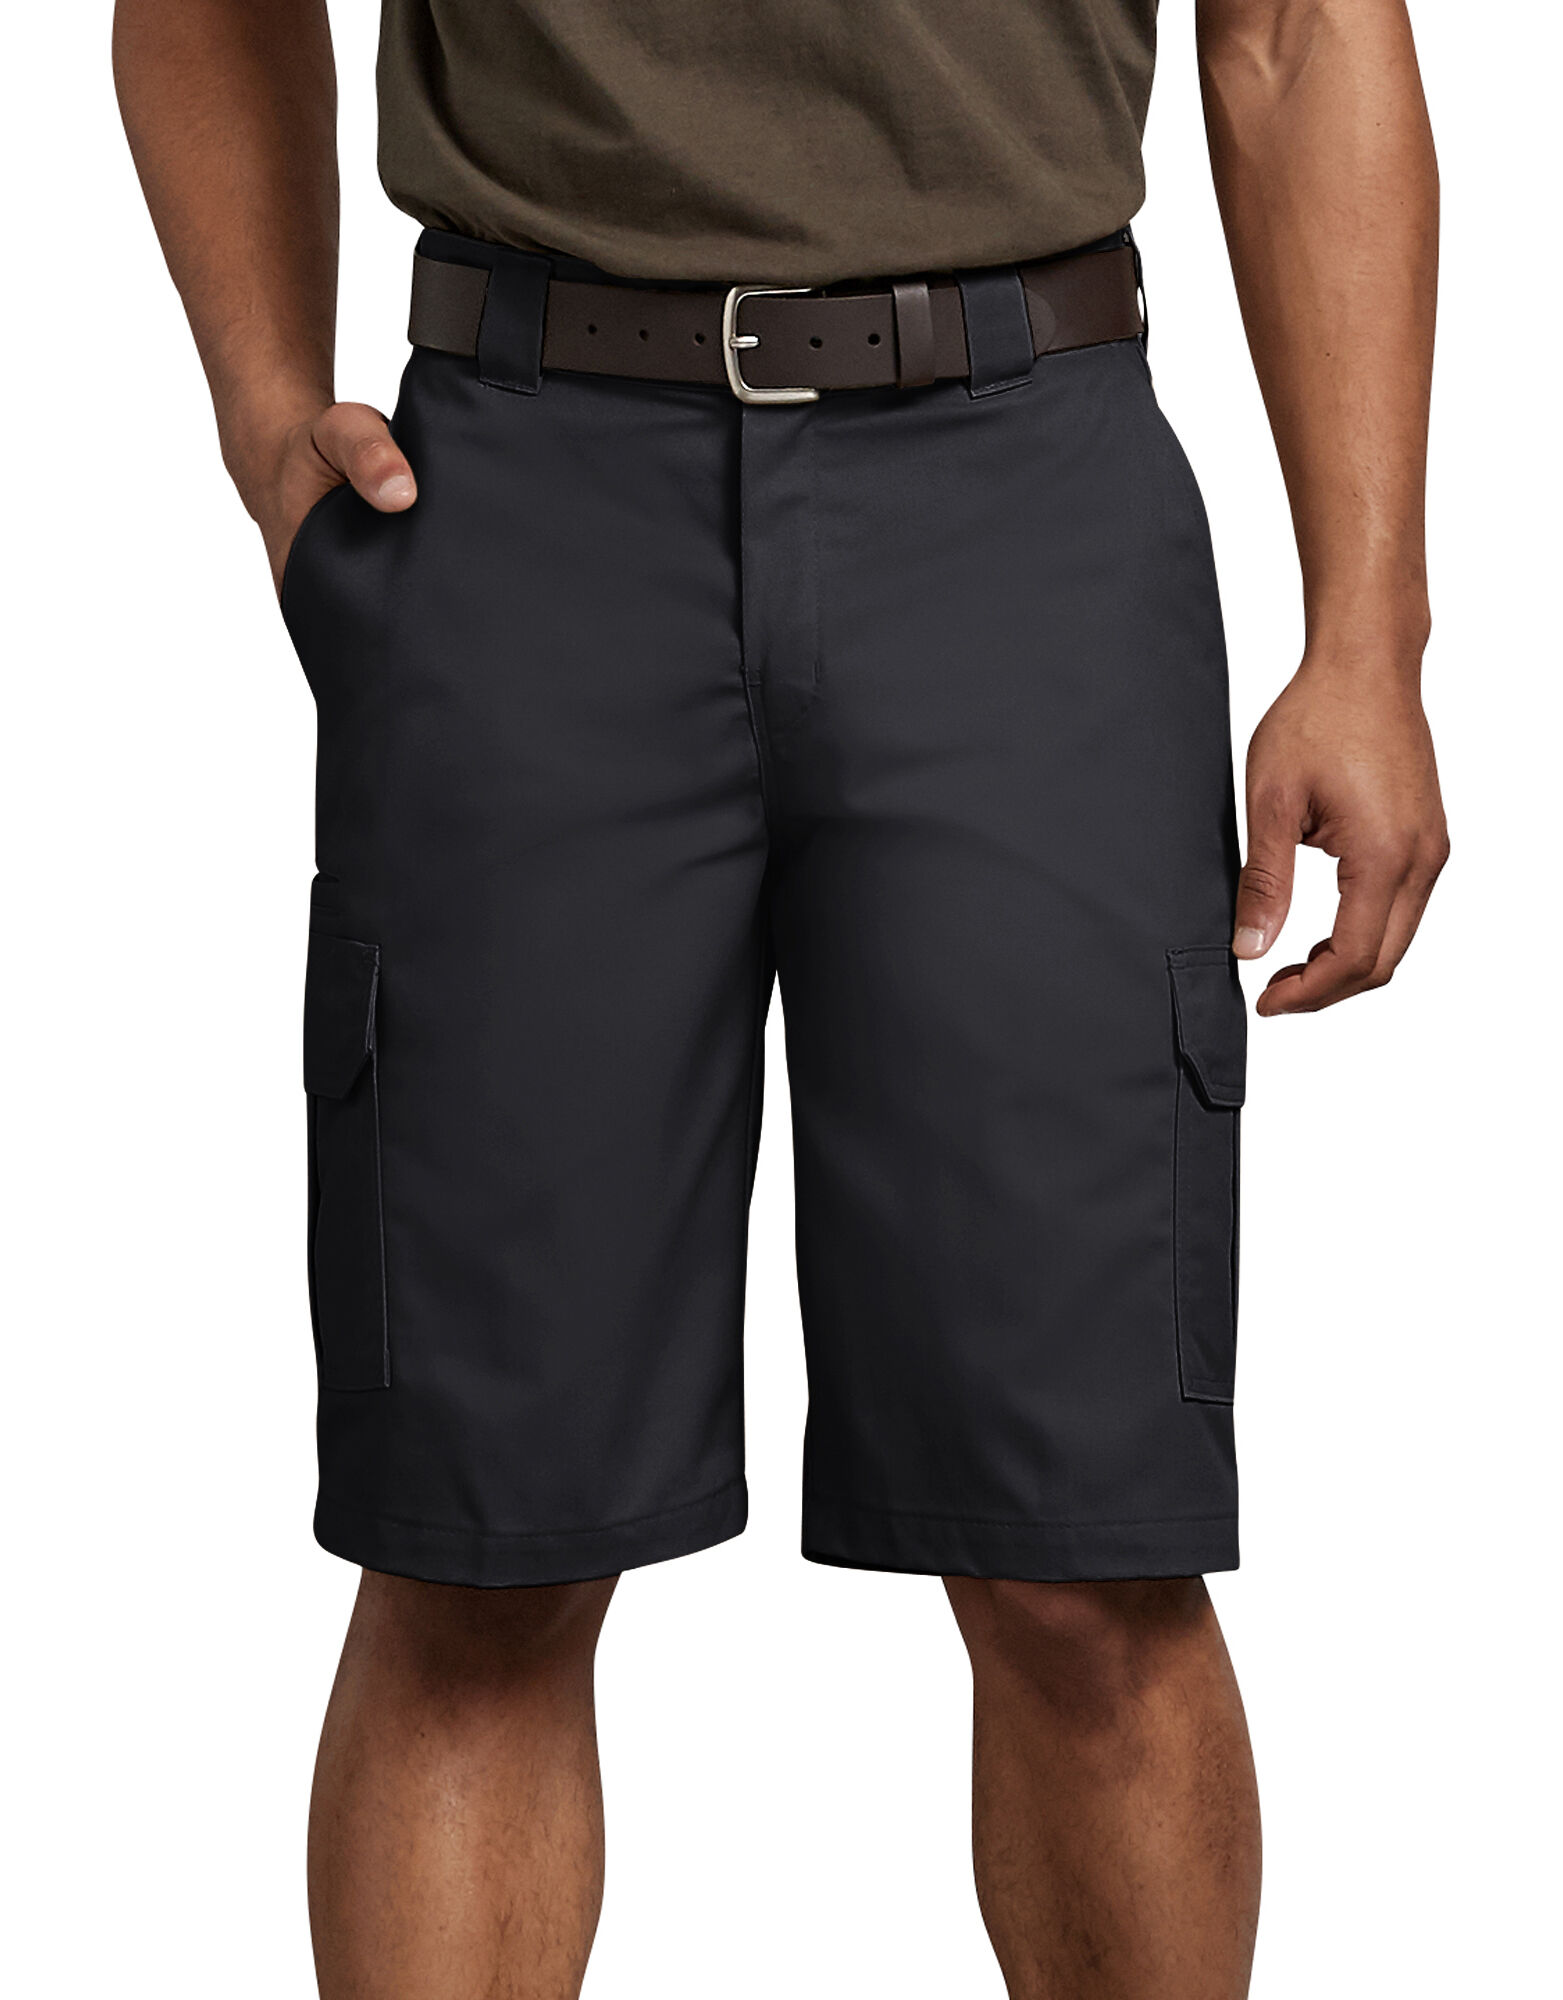 Compress the working knowledge of Dickies pants into half the fabric, and you've got Dickies seusinteresses.tks Shorts blend function and superior good looks, while playing homage to that warm weather godsend known as the upper thigh breeze.